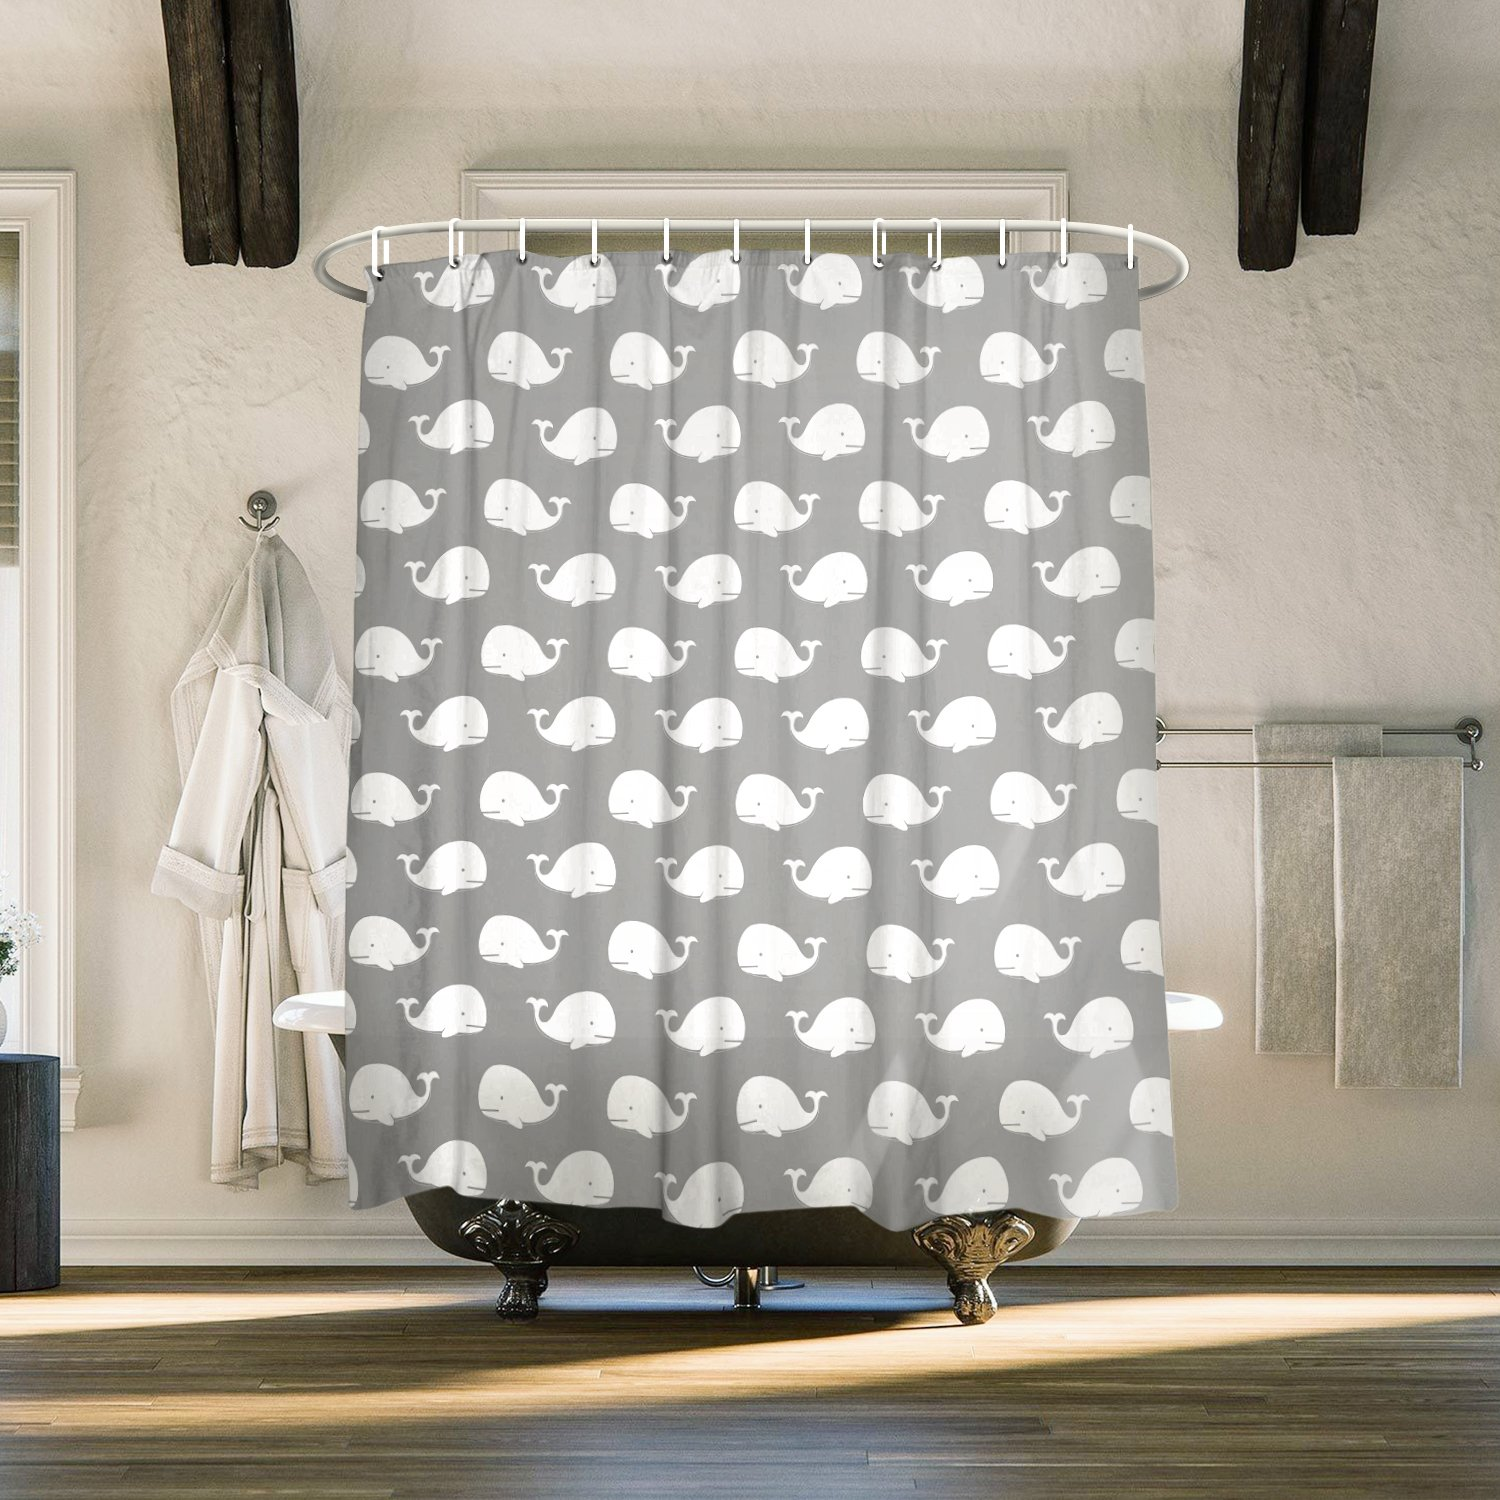 Waterproof and Mildewproof Polyester Fabric Bath Curtain Design,72x72-Inch Cloud Dream Cartoon Whale Gray Shower Curtain